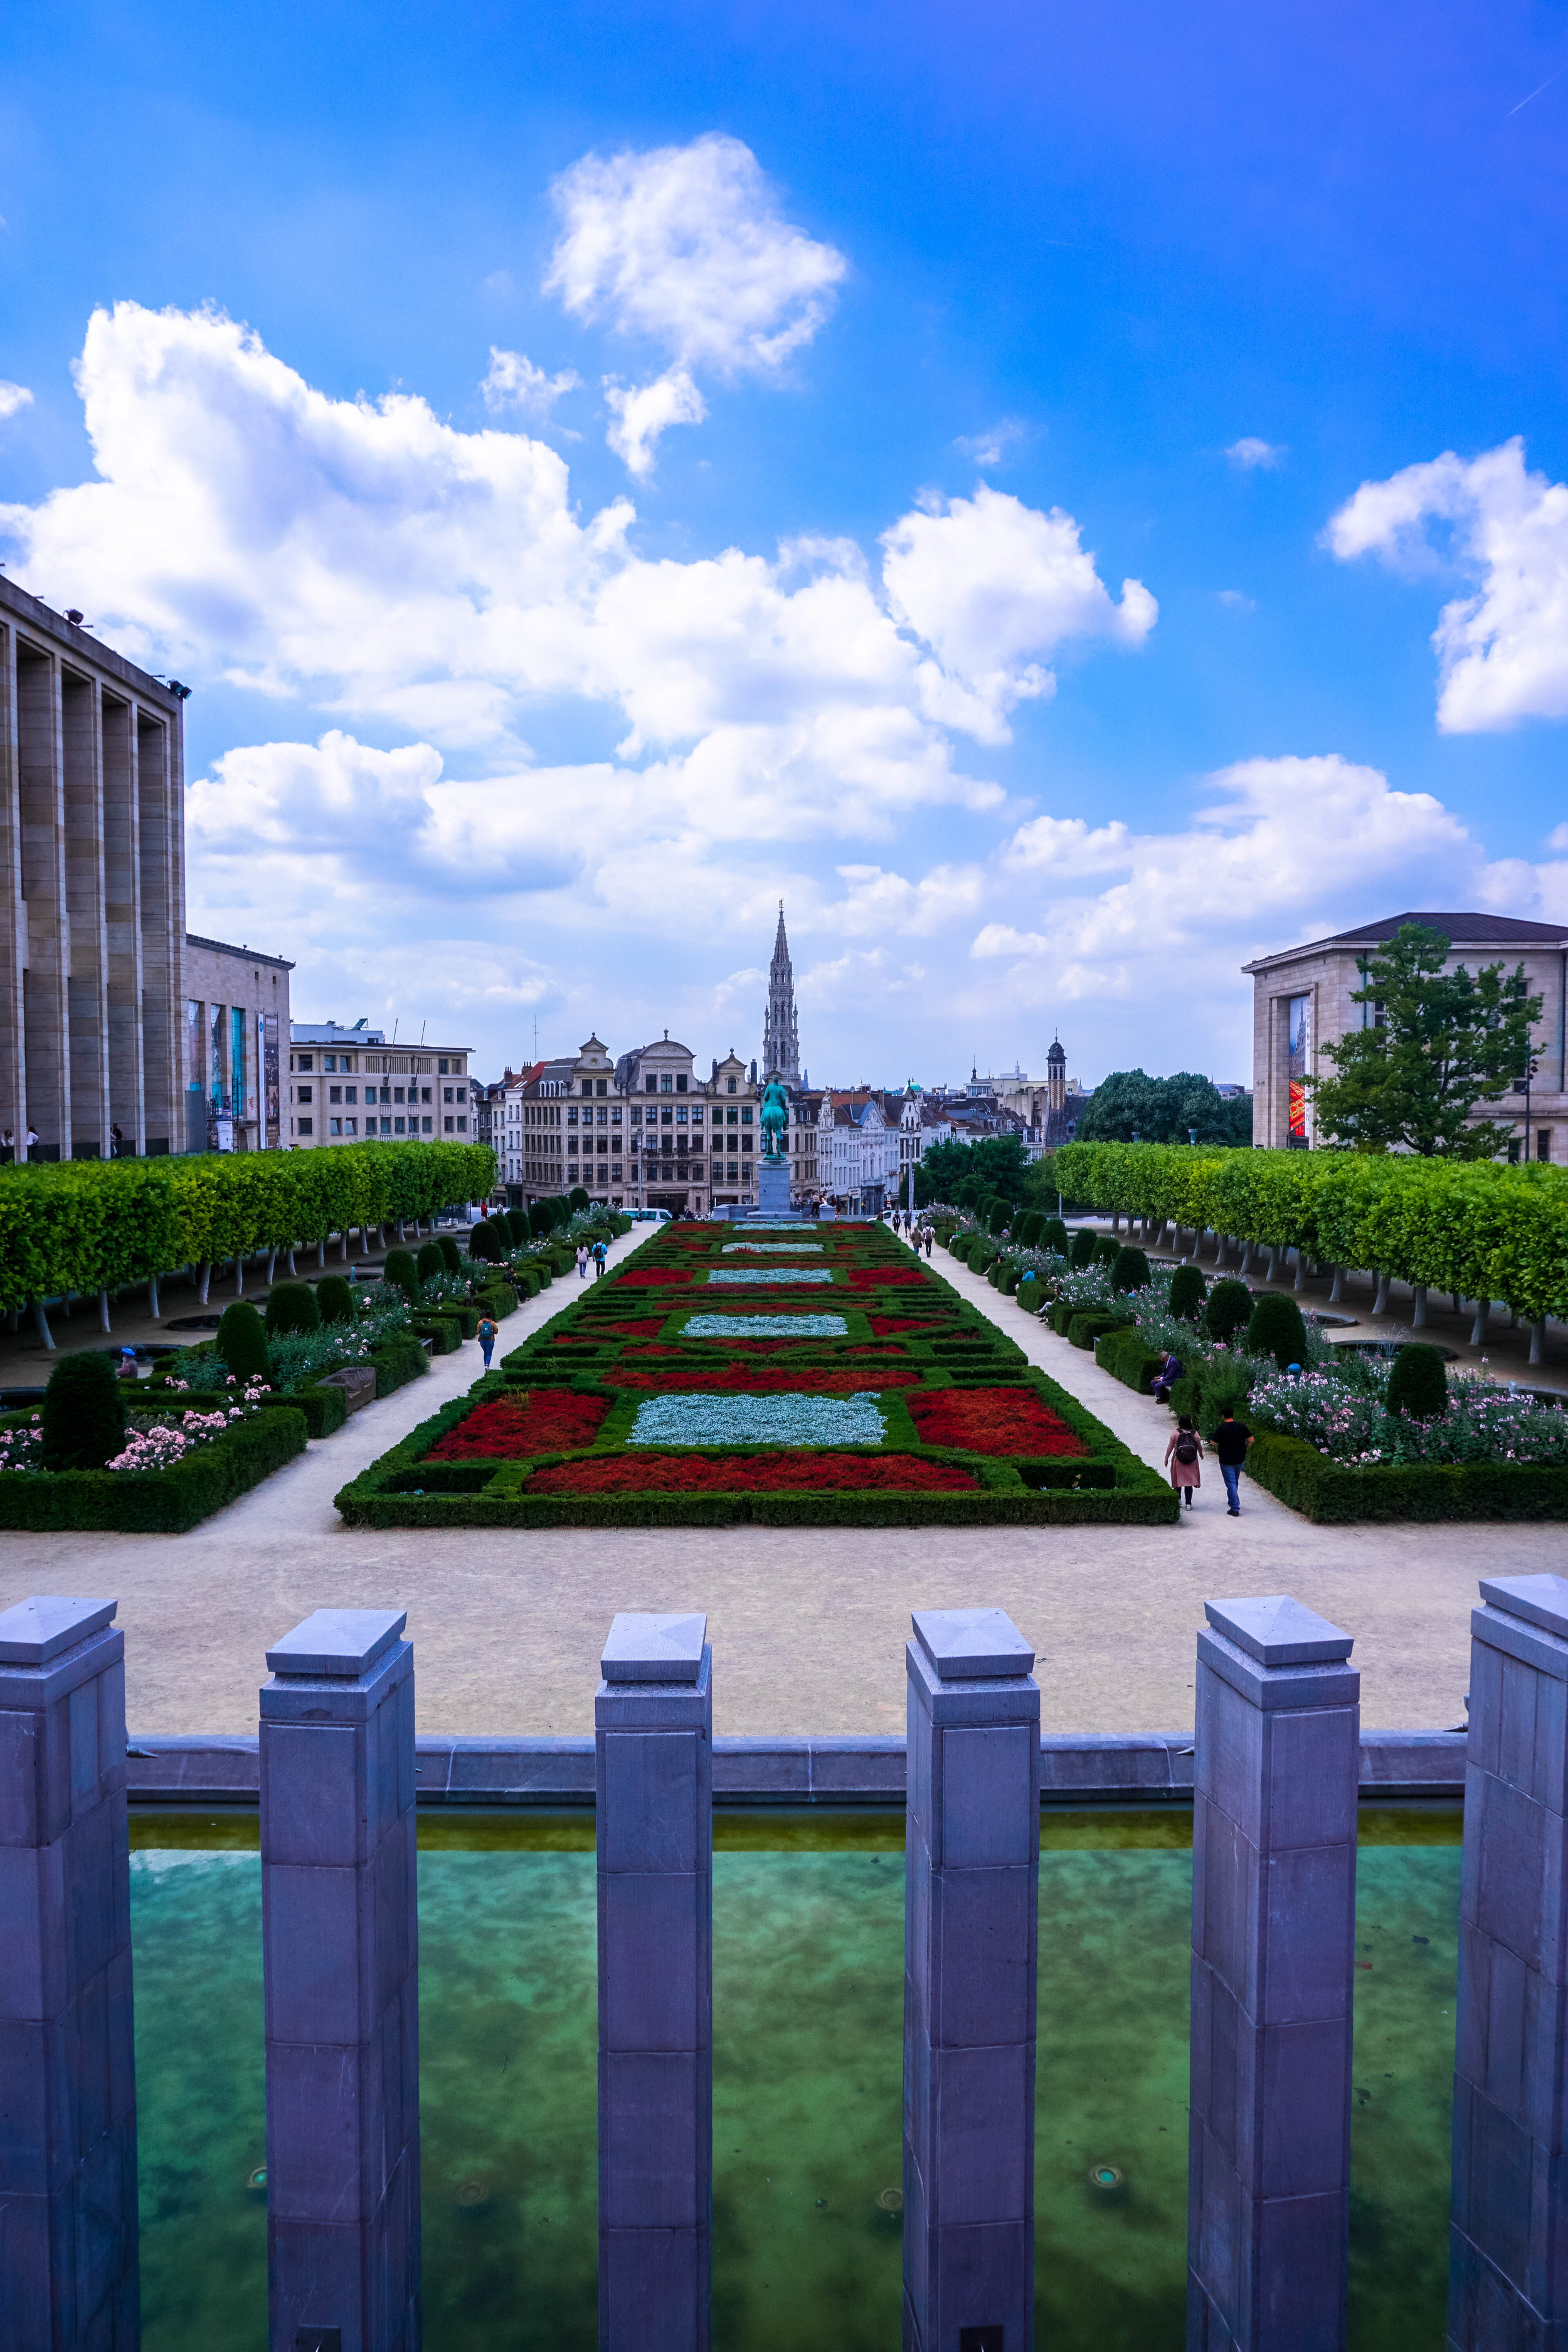 City of Brussels